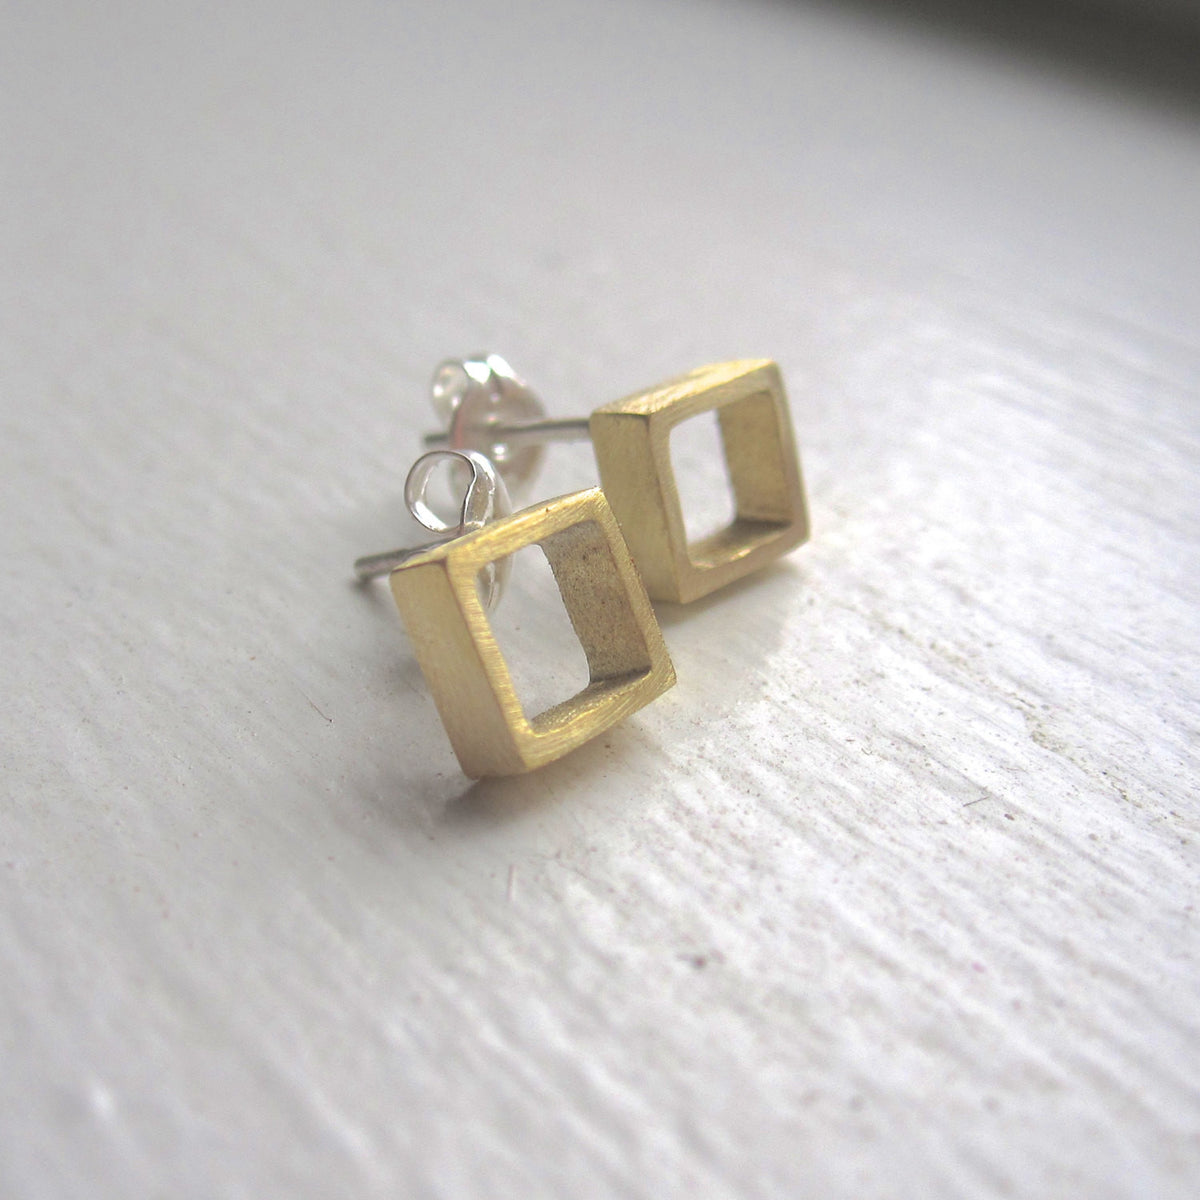 Open Hand-Made Square Cube Stud Earrings in Gold Colored Brass - 0124 - Virginia Wynne Designs